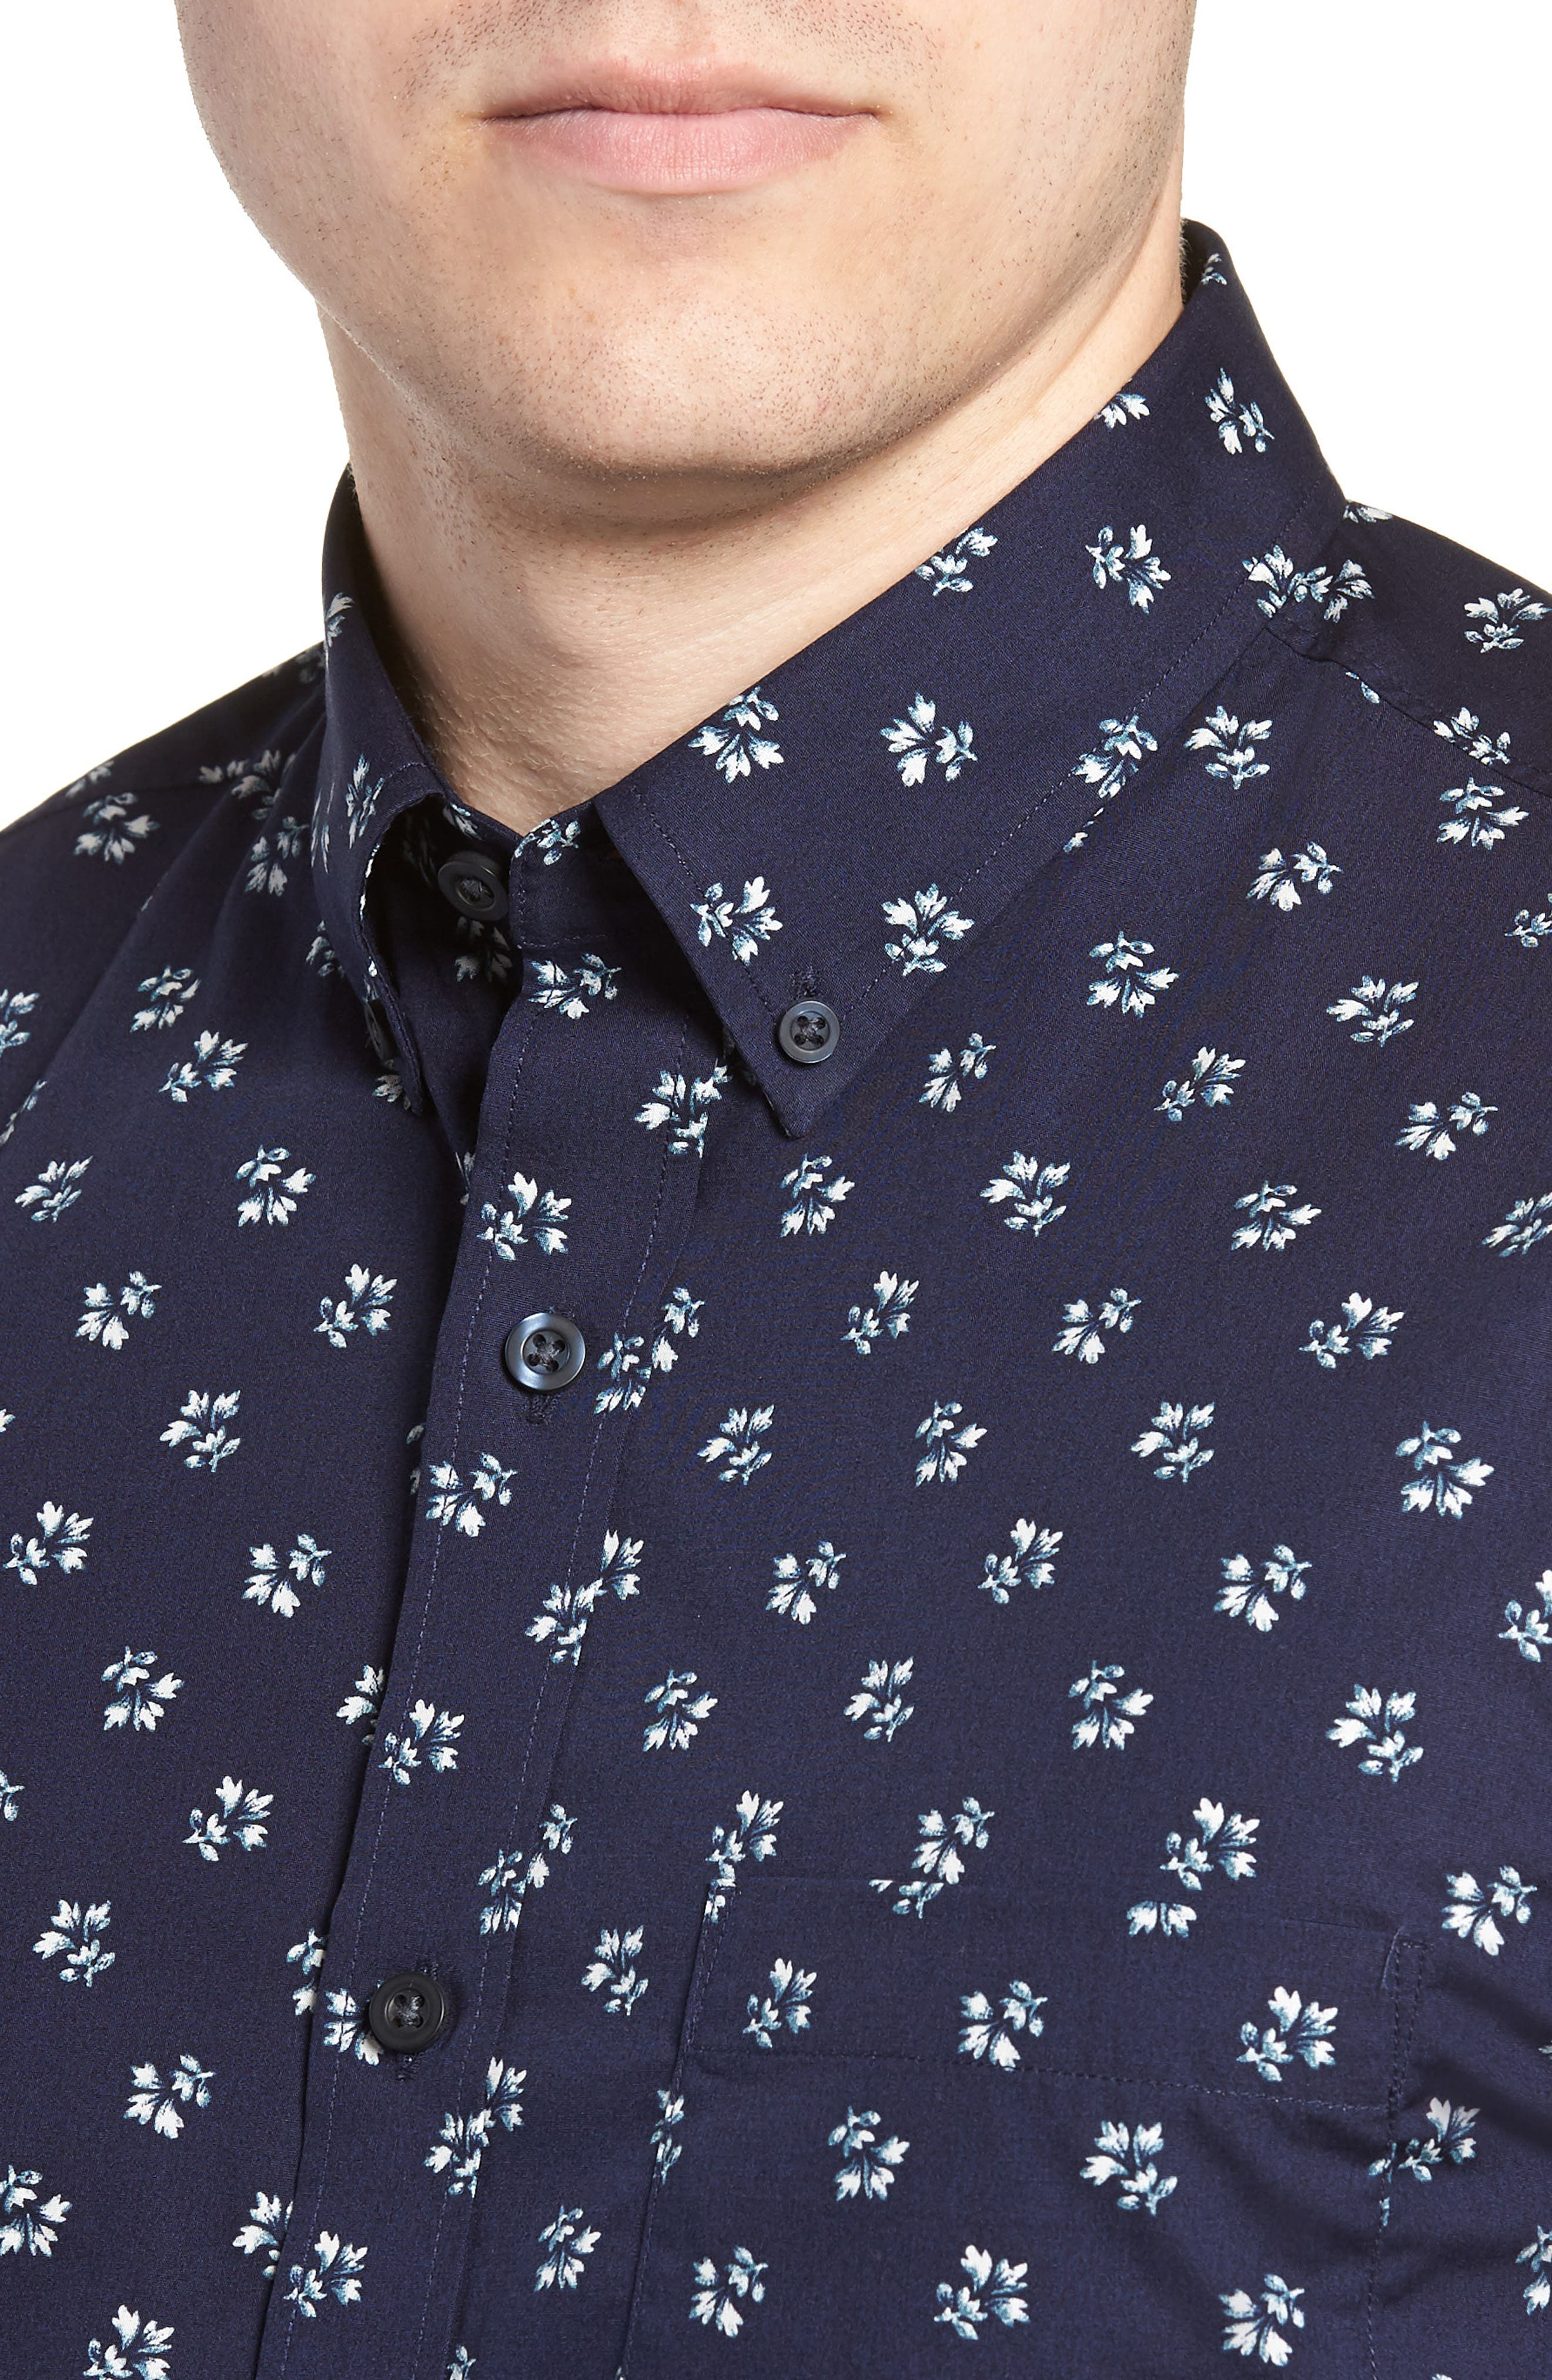 Trim Fit Non-Iron Print Sport Shirt,                             Alternate thumbnail 4, color,                             NAVY NIGHT FLORAL PRINT